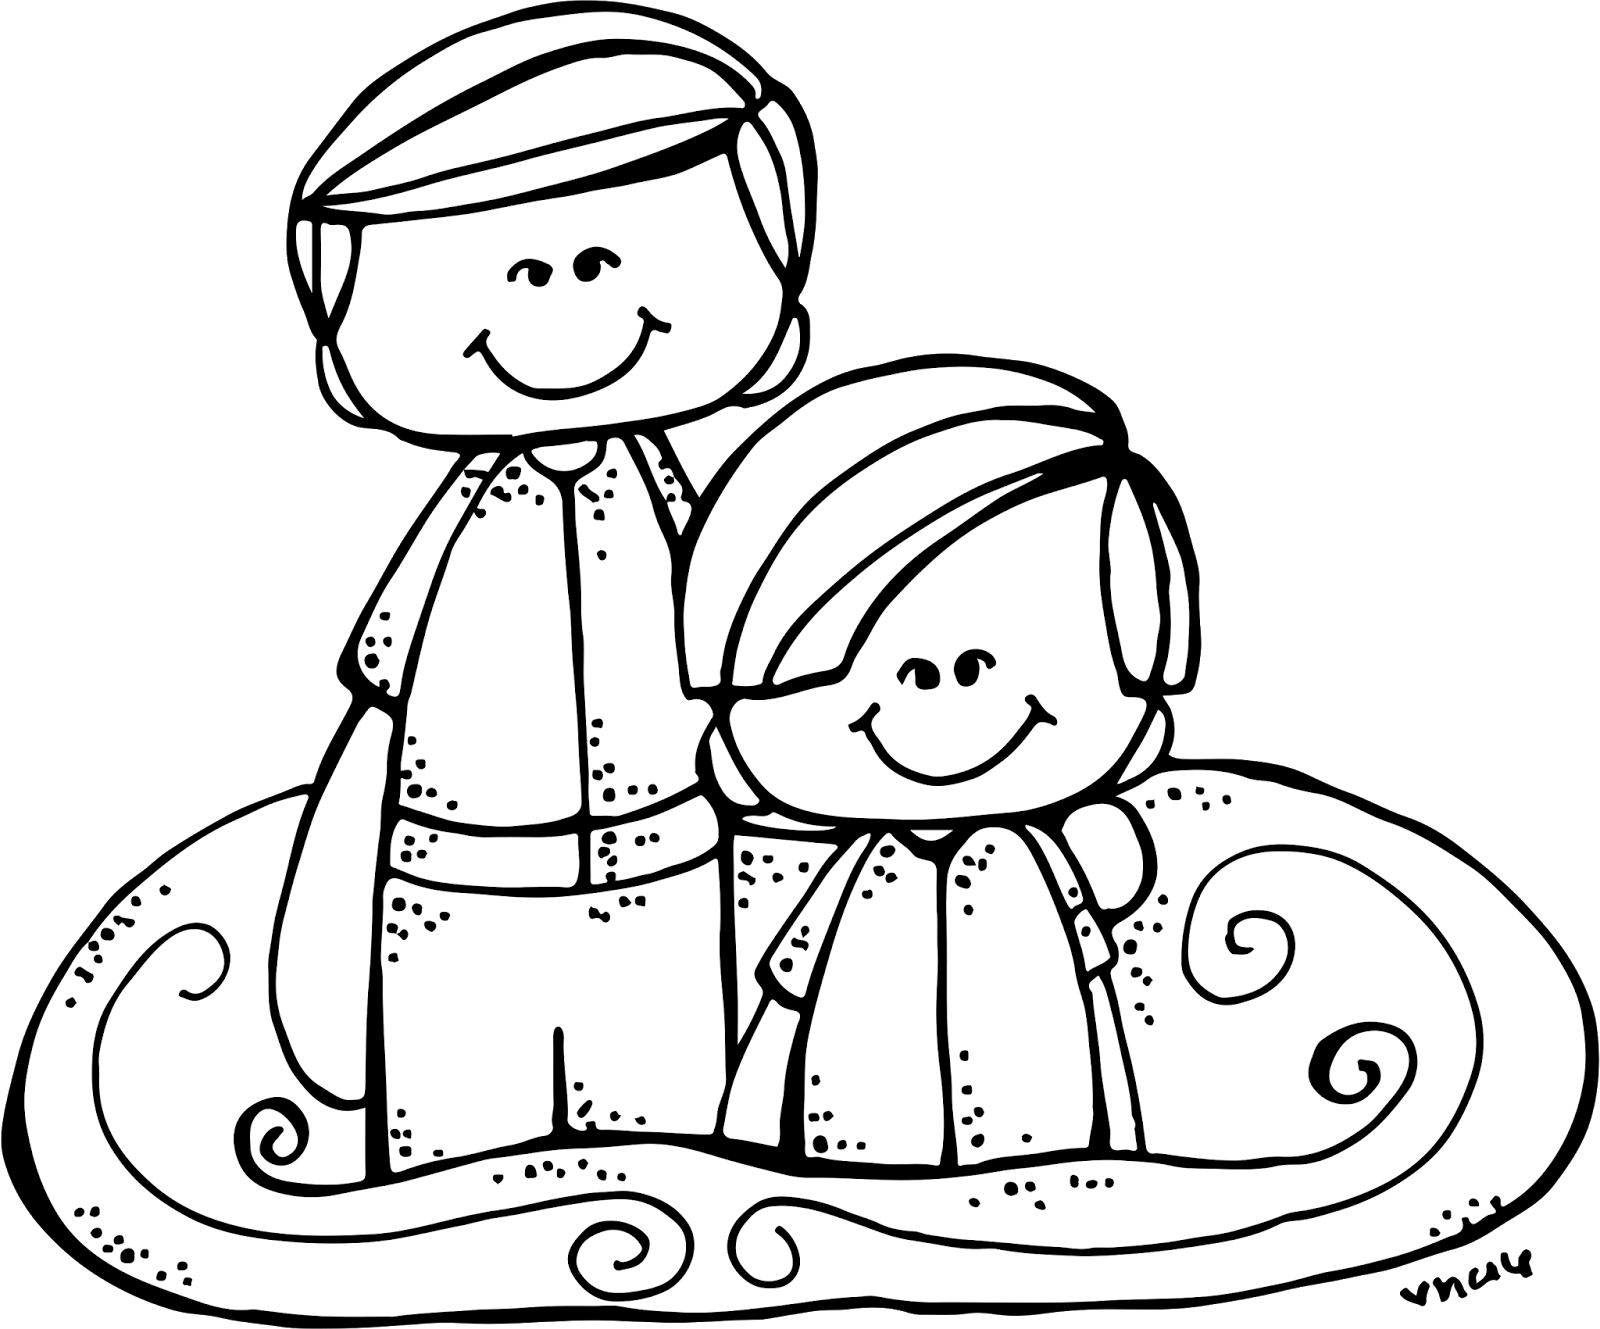 Baptism lds clipart clipart images gallery for free download.